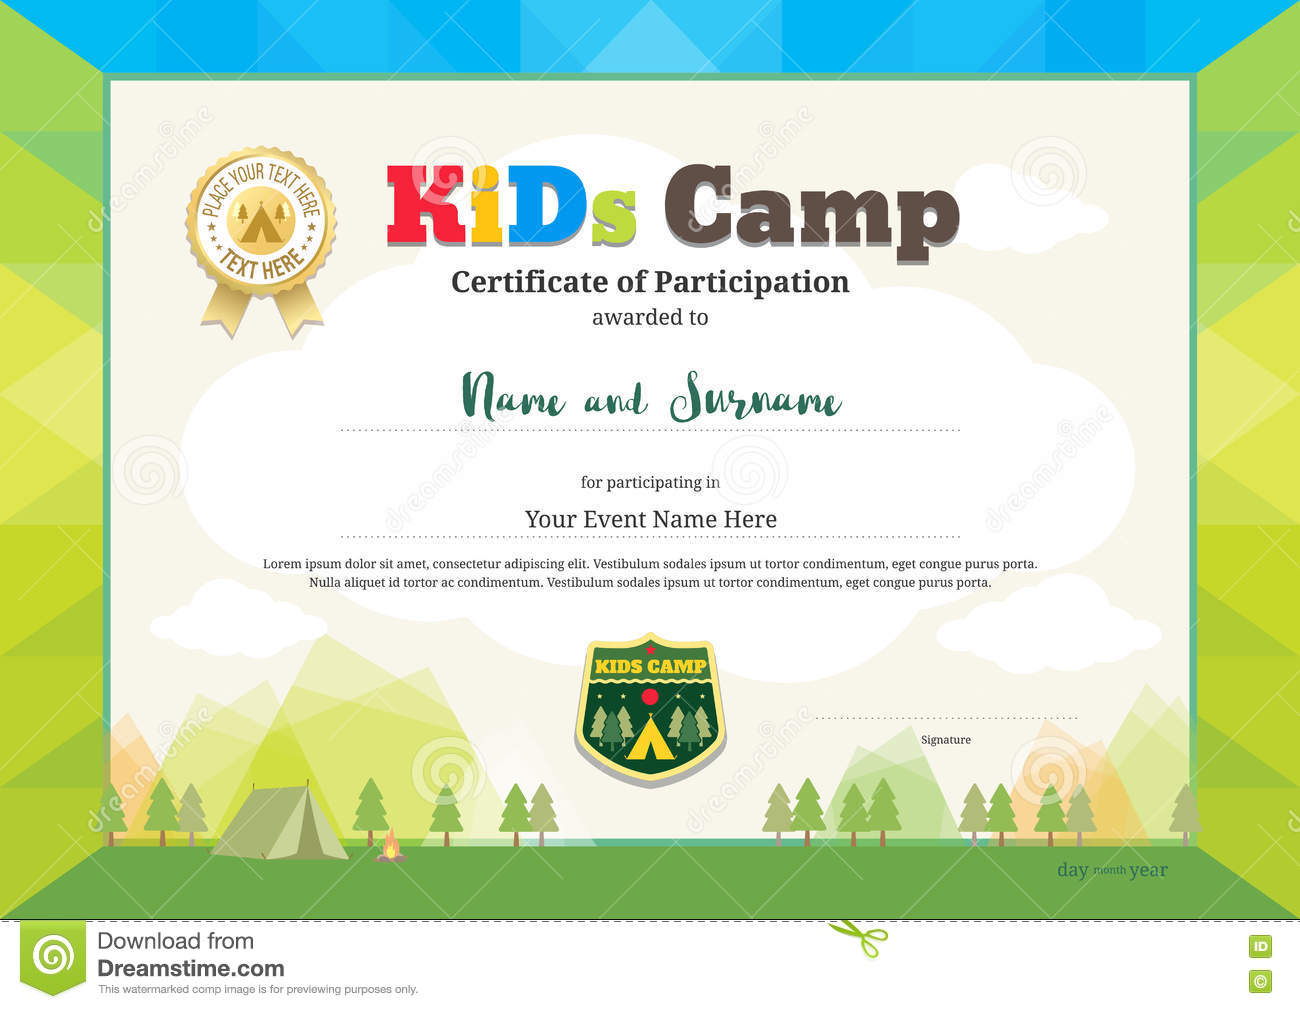 Colorful certificate of partipation for kids activities or kids